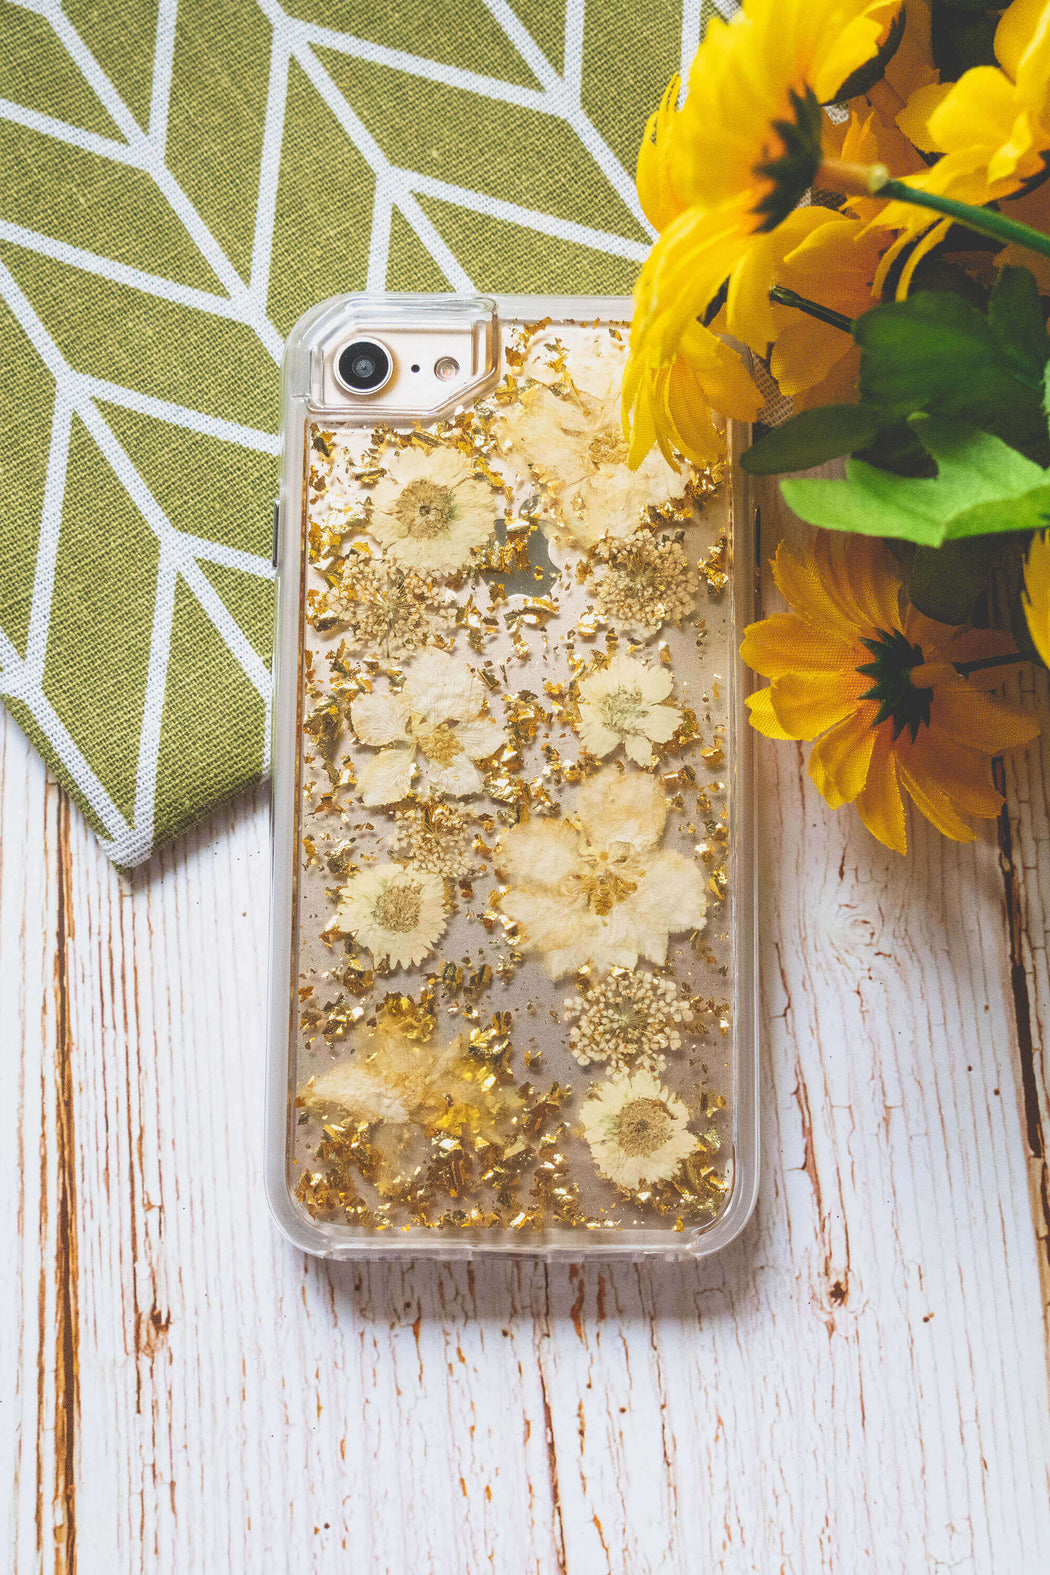 pressed flower iphone case cute protective anti drop yellow daisy gold foil glitter luxury wildflower floral neverland floralfy